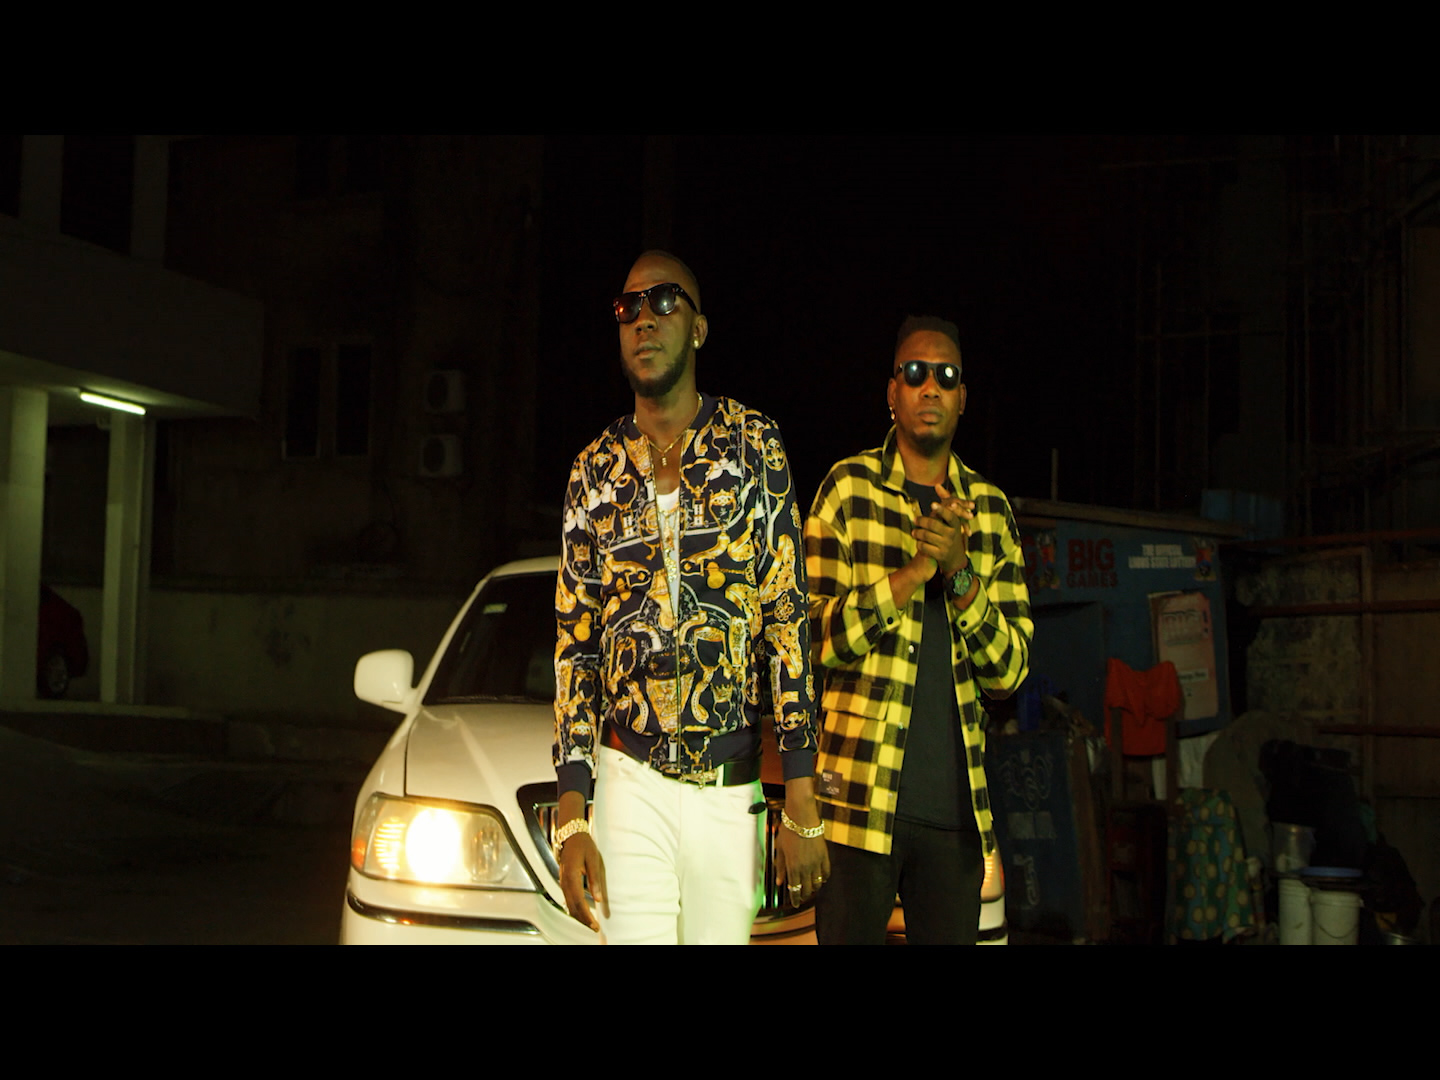 VIDEO: SERIKI – IJO JONSE FT QDOT